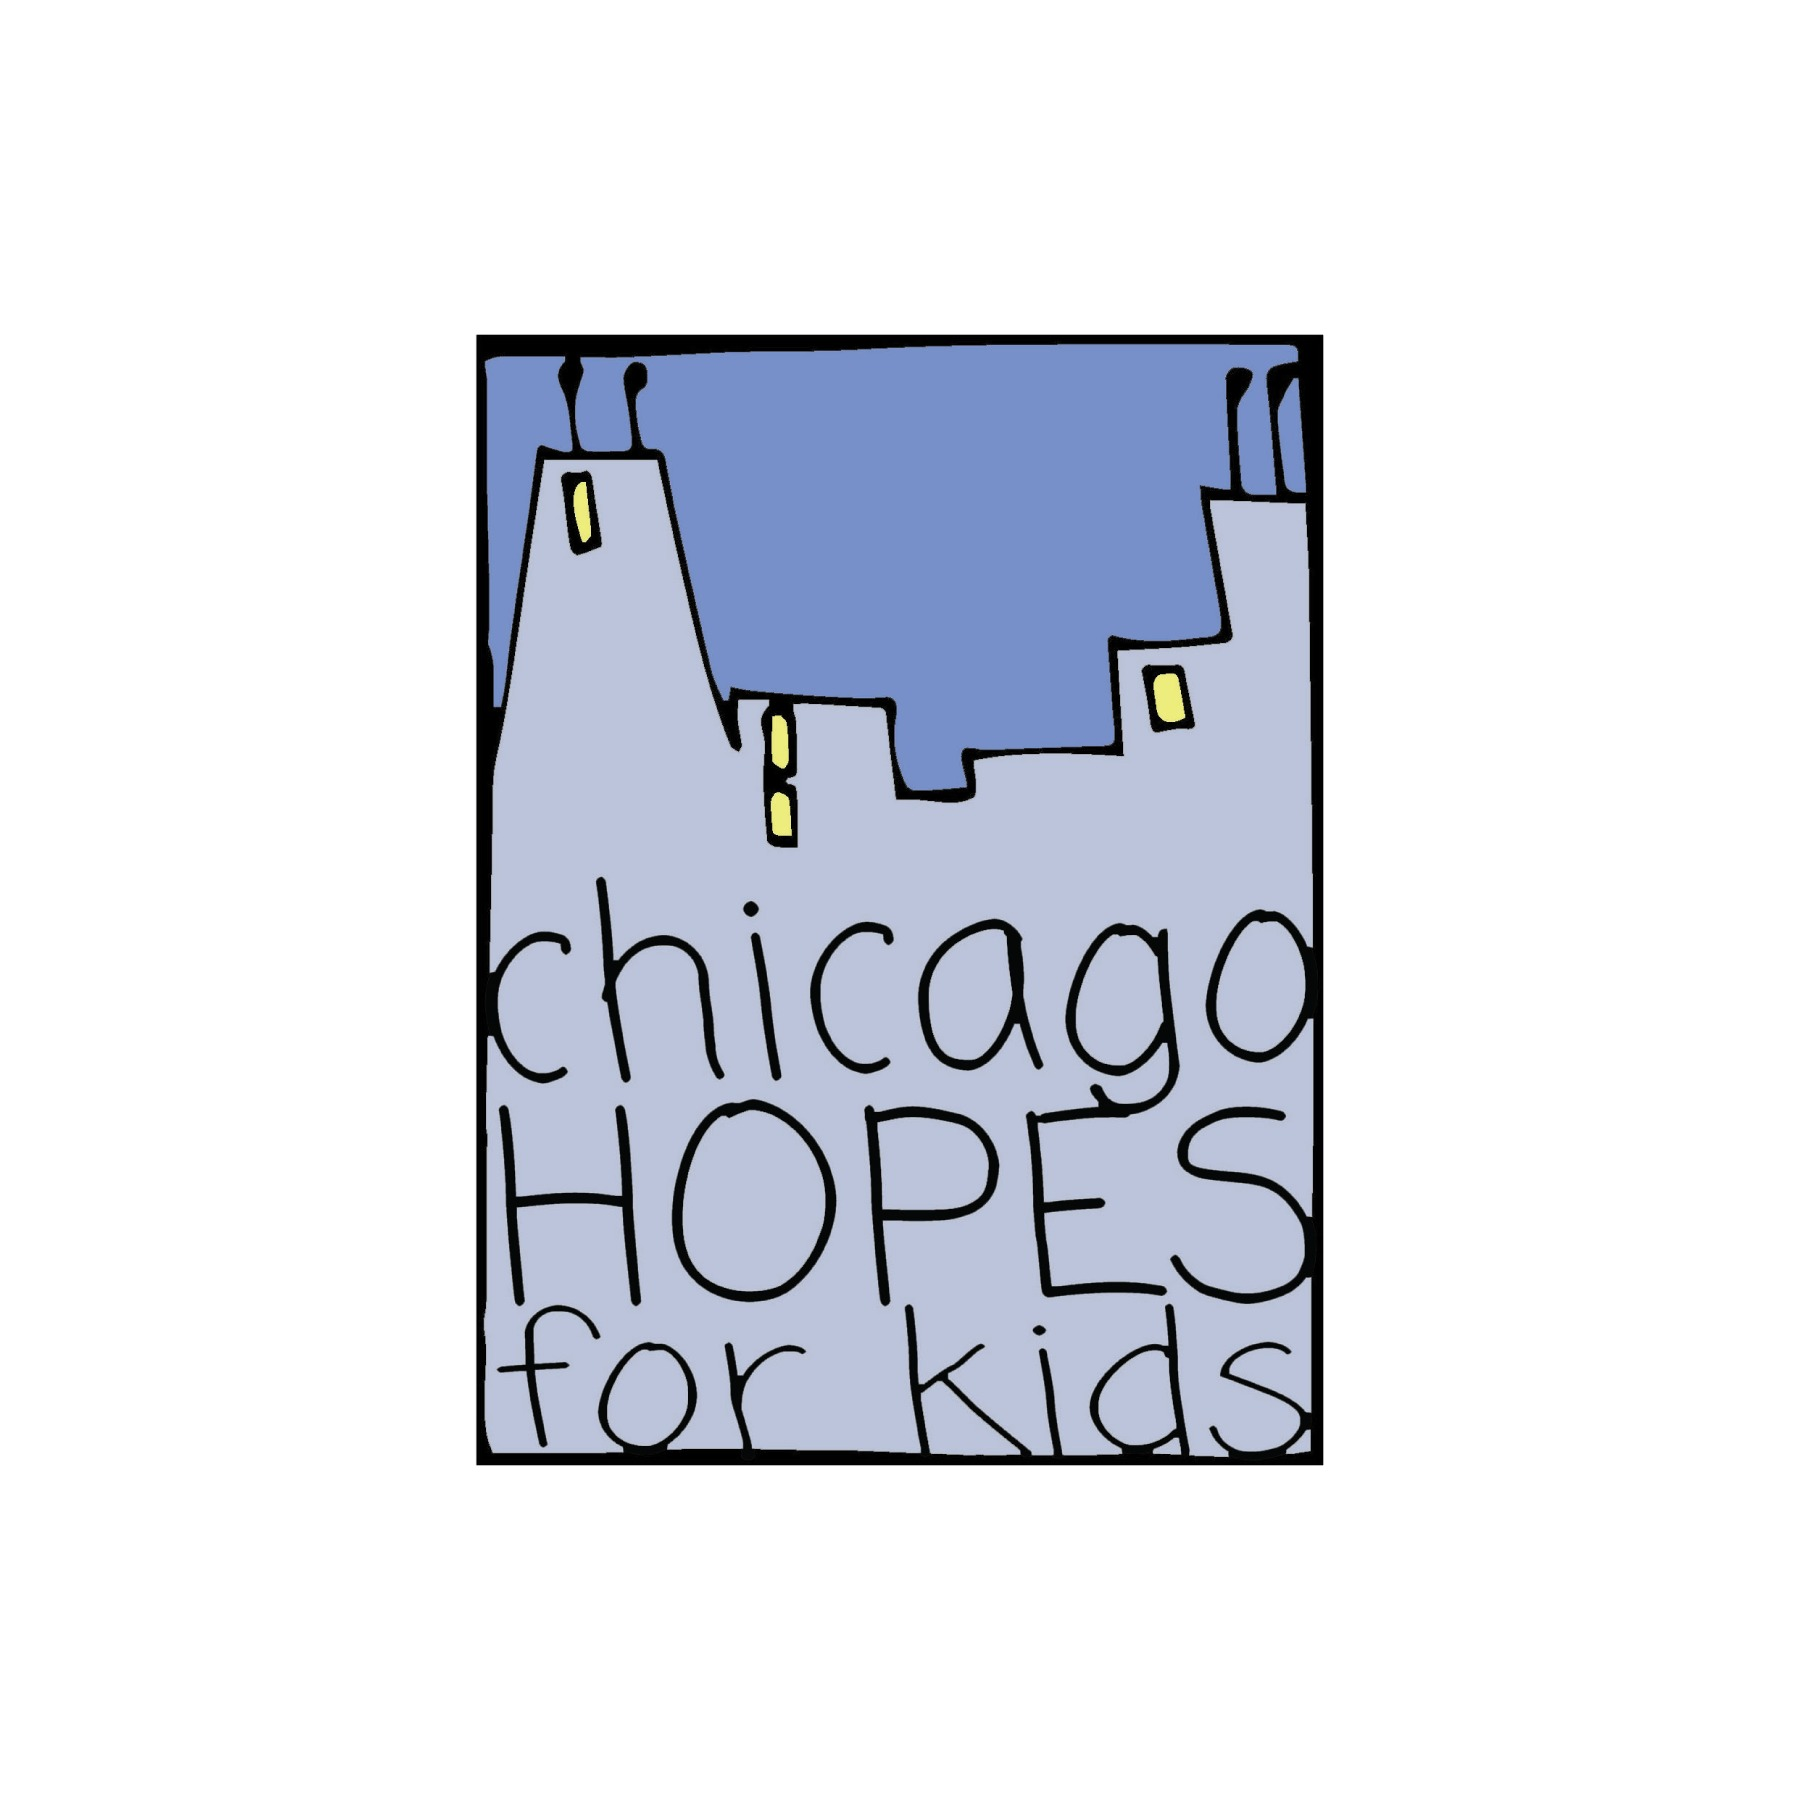 Chicago Hopes for Kids logo